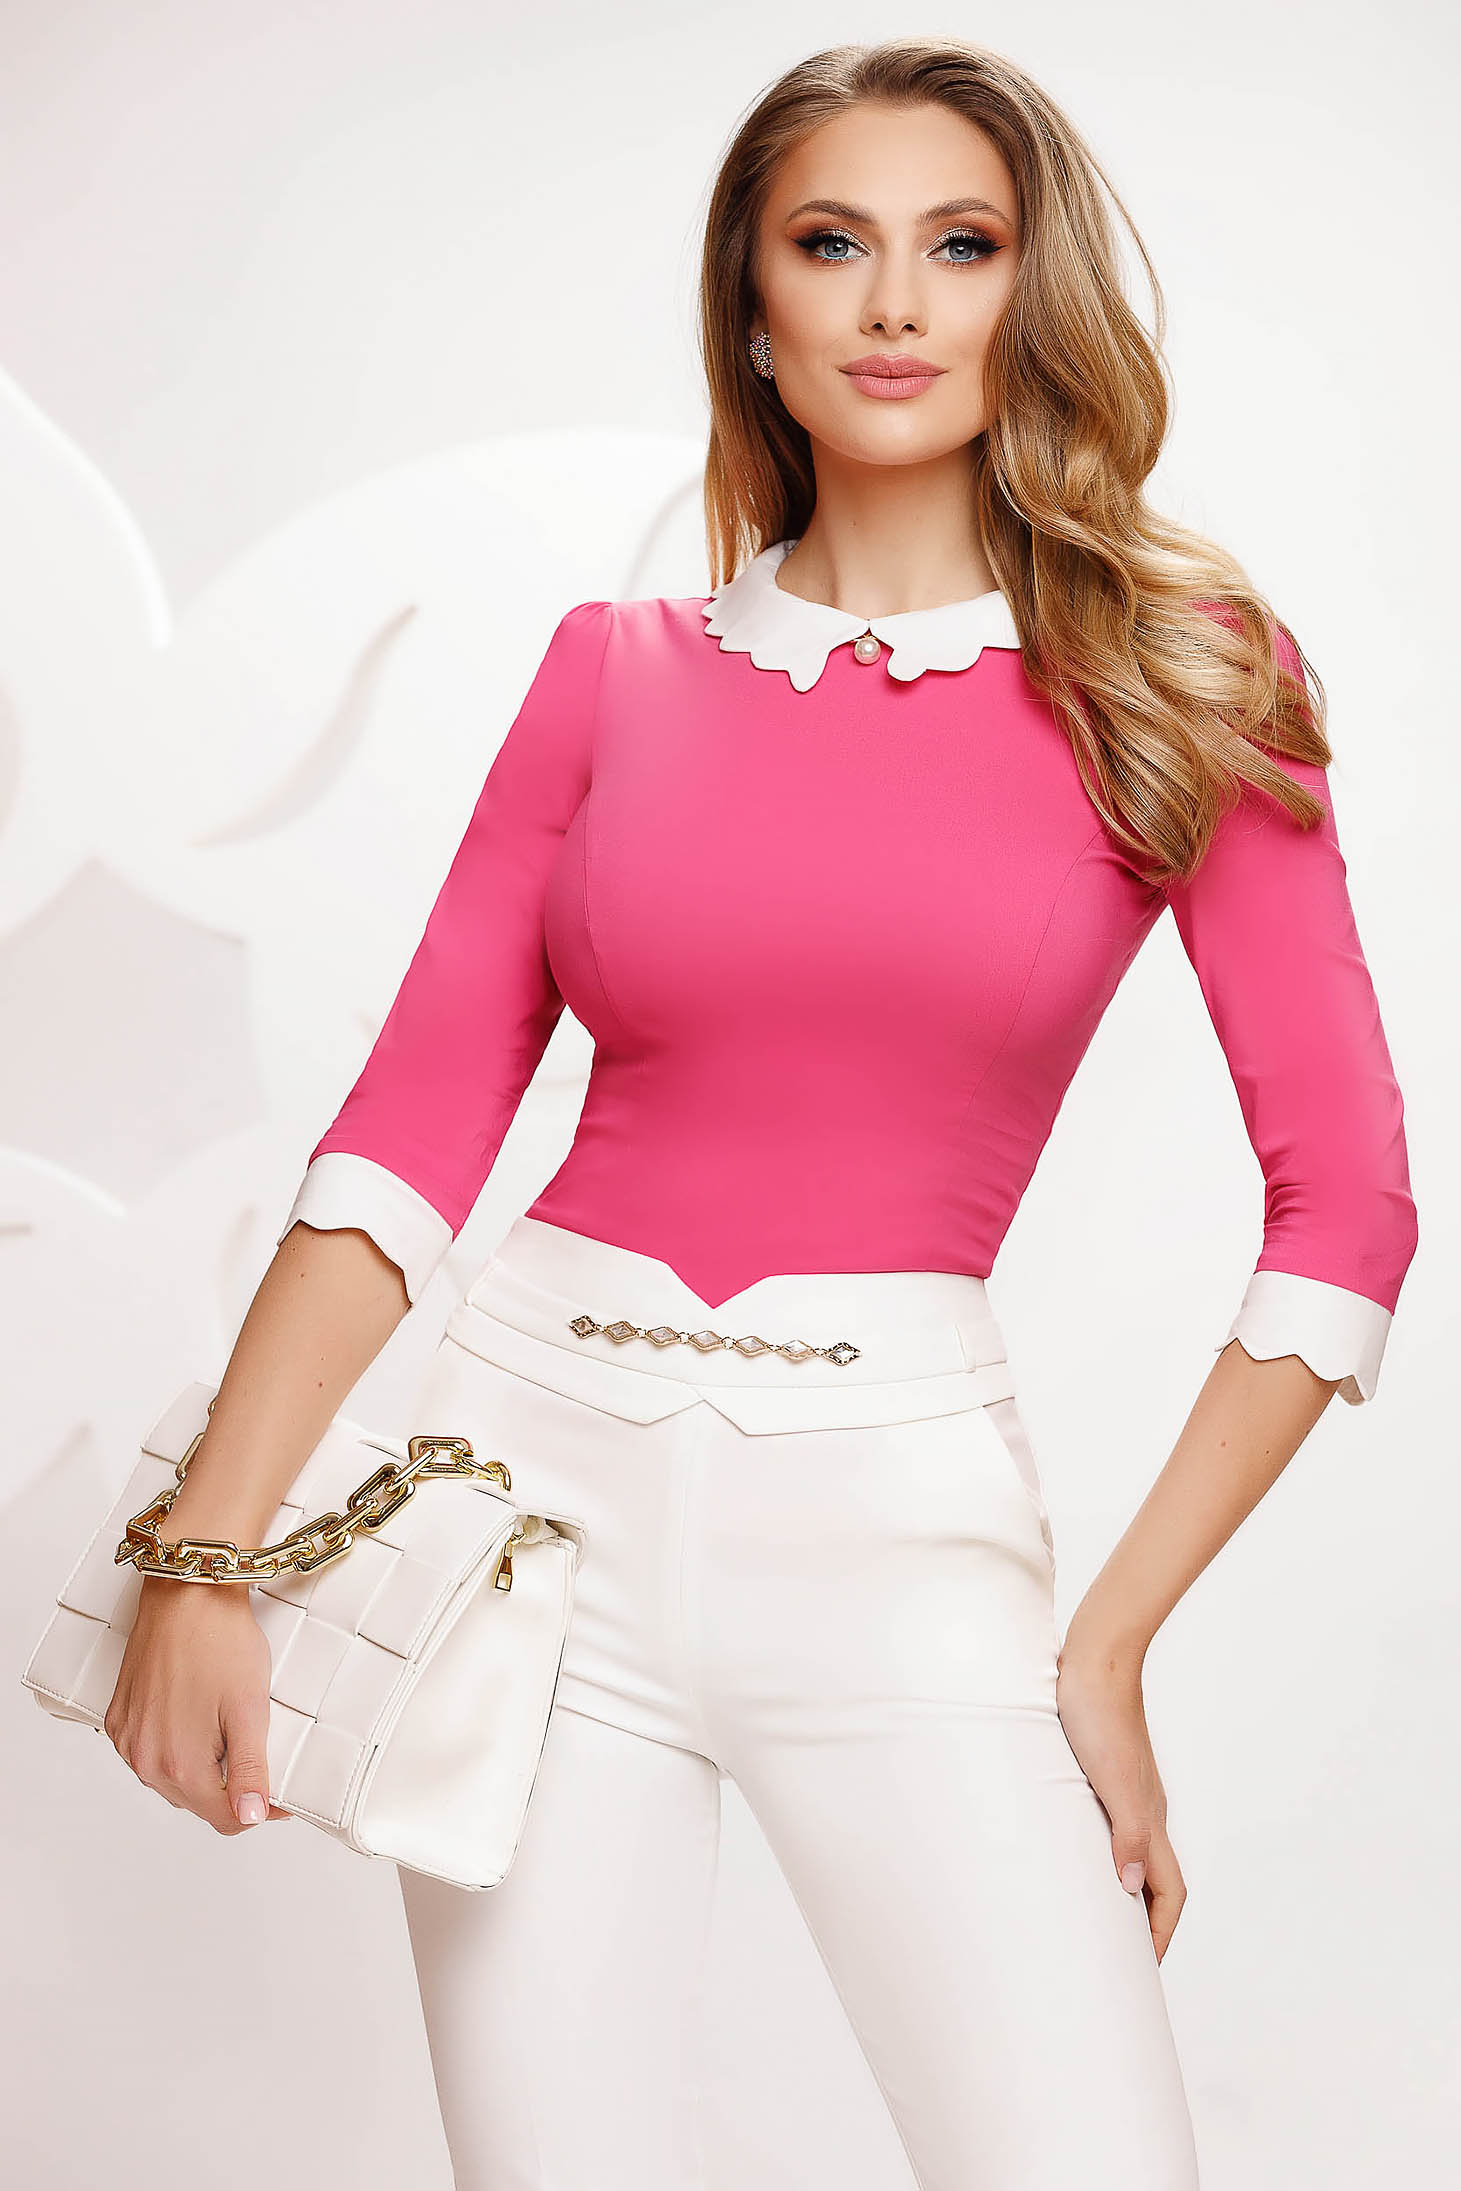 Cotton elegant tented accessorized with breastpin pink women`s shirt